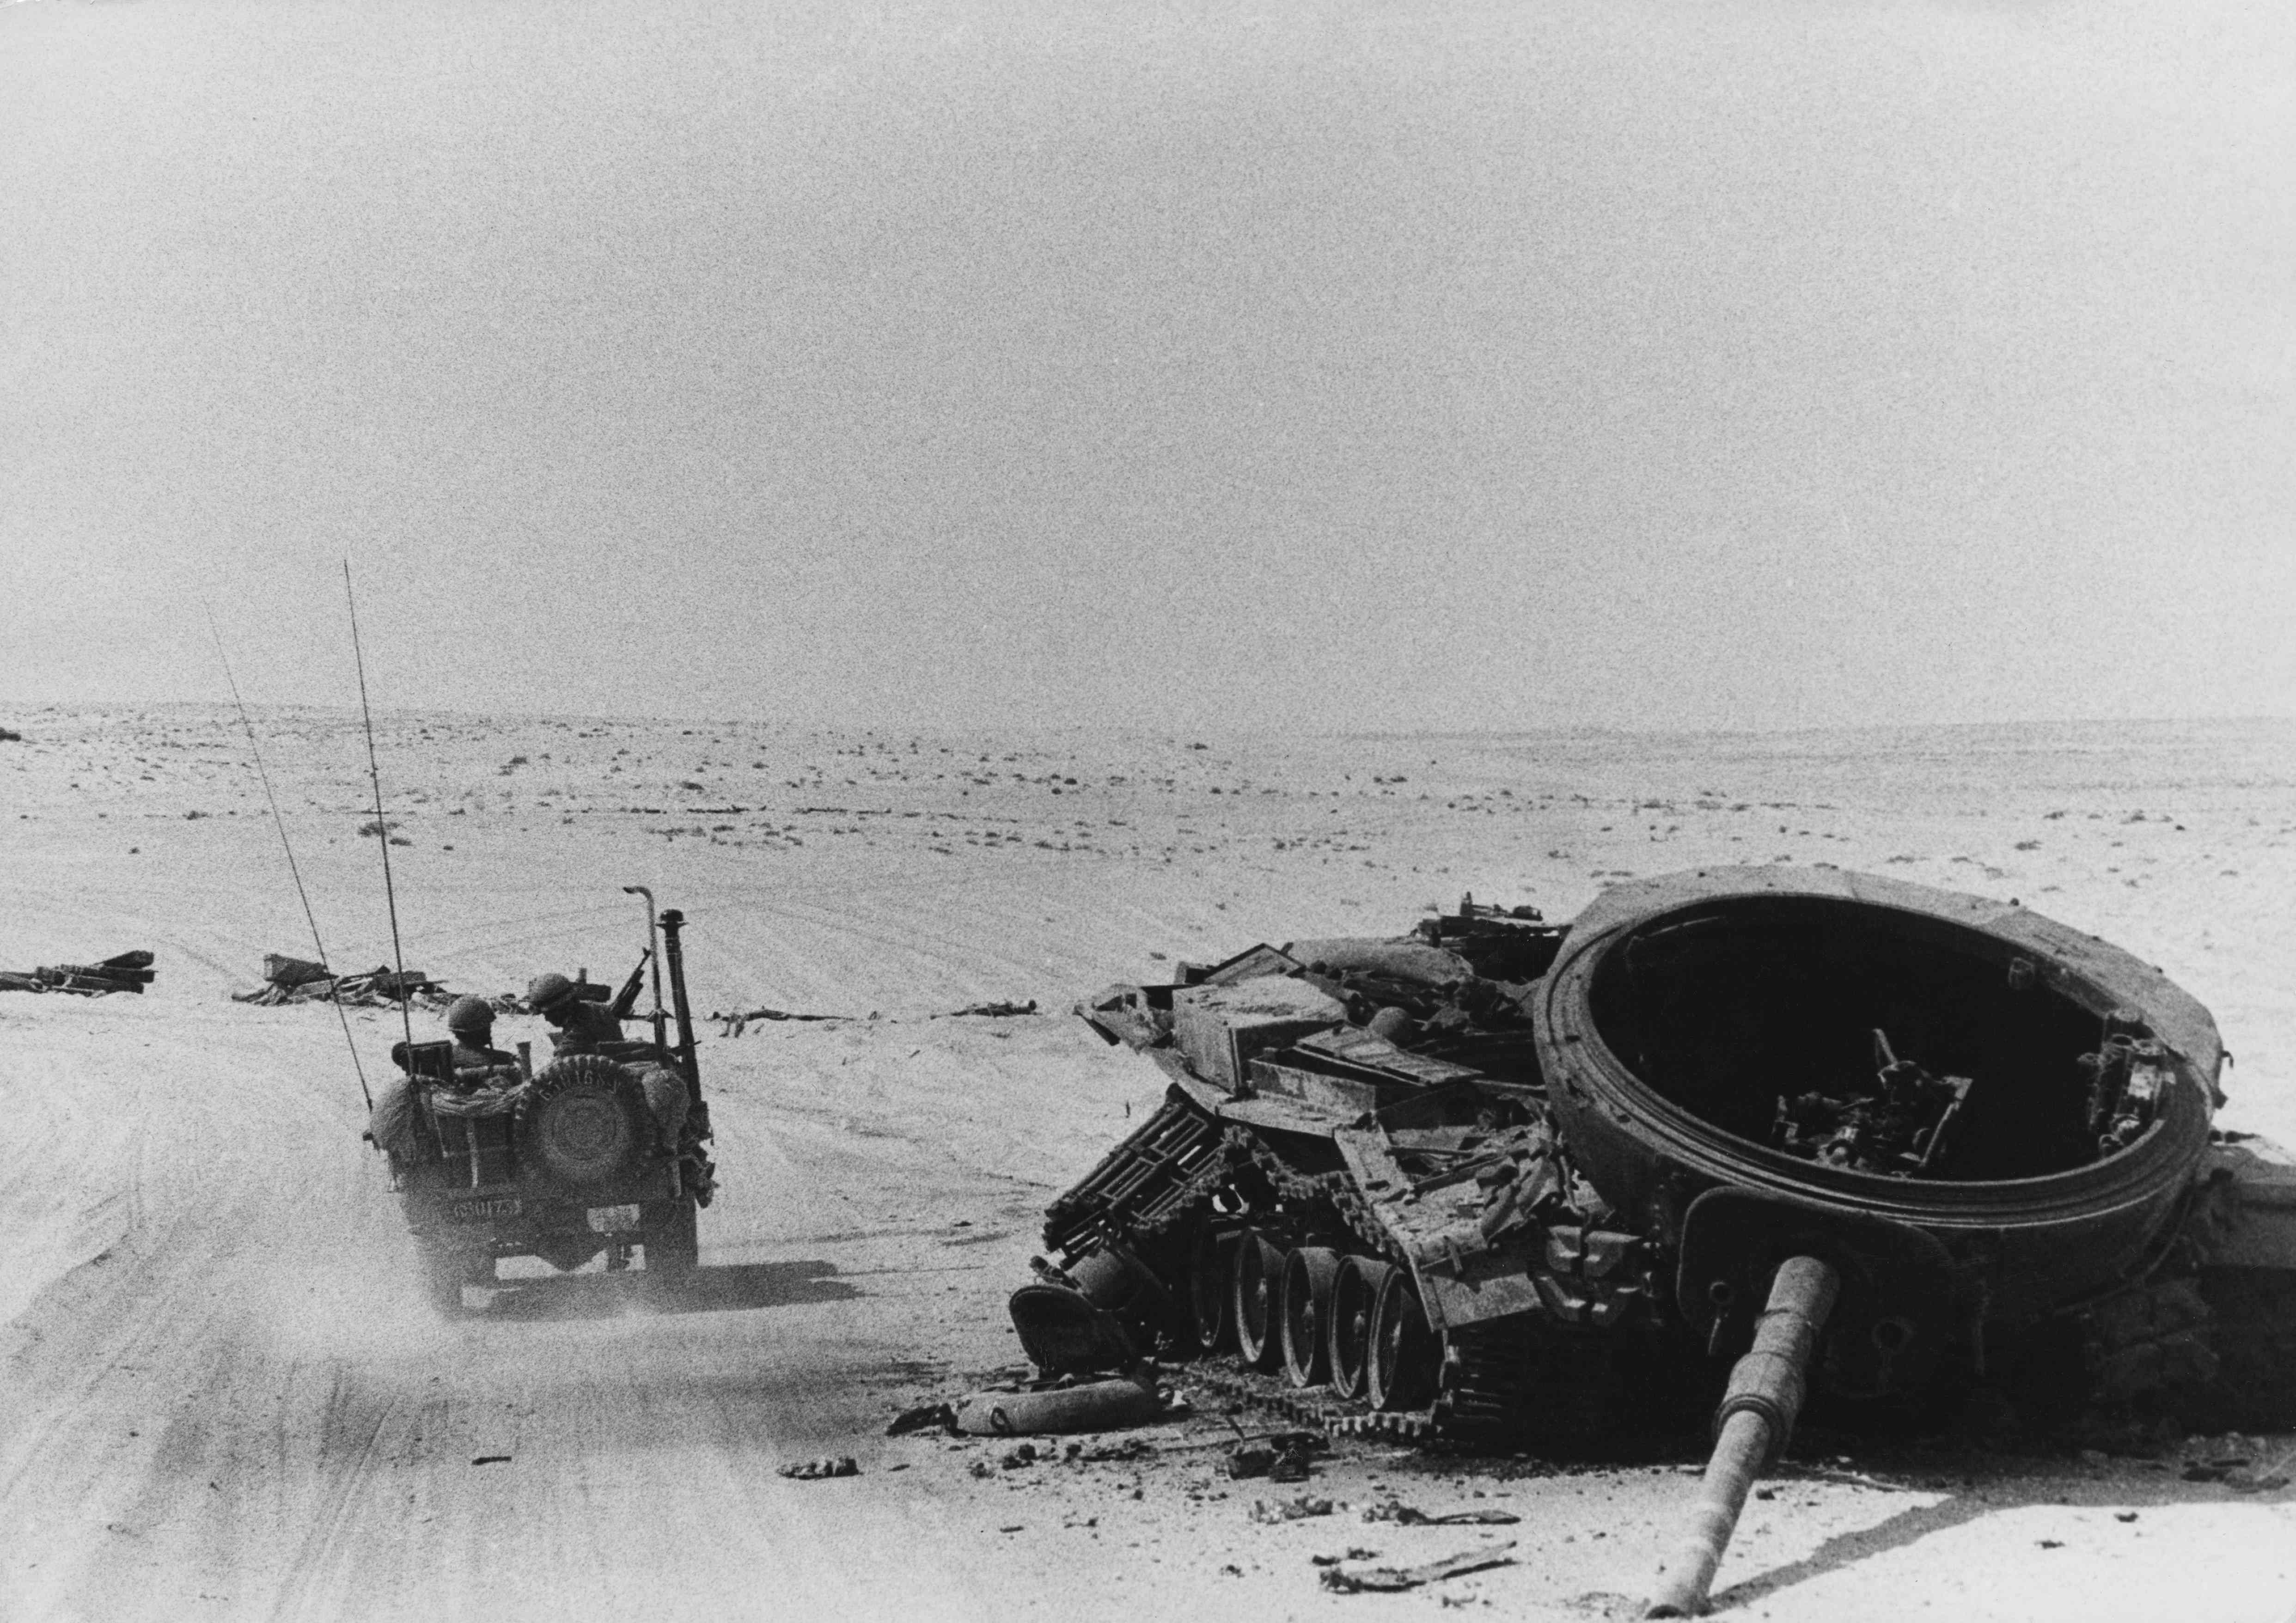 Wreckage of an Egyptian tank in the Sinai, 1973